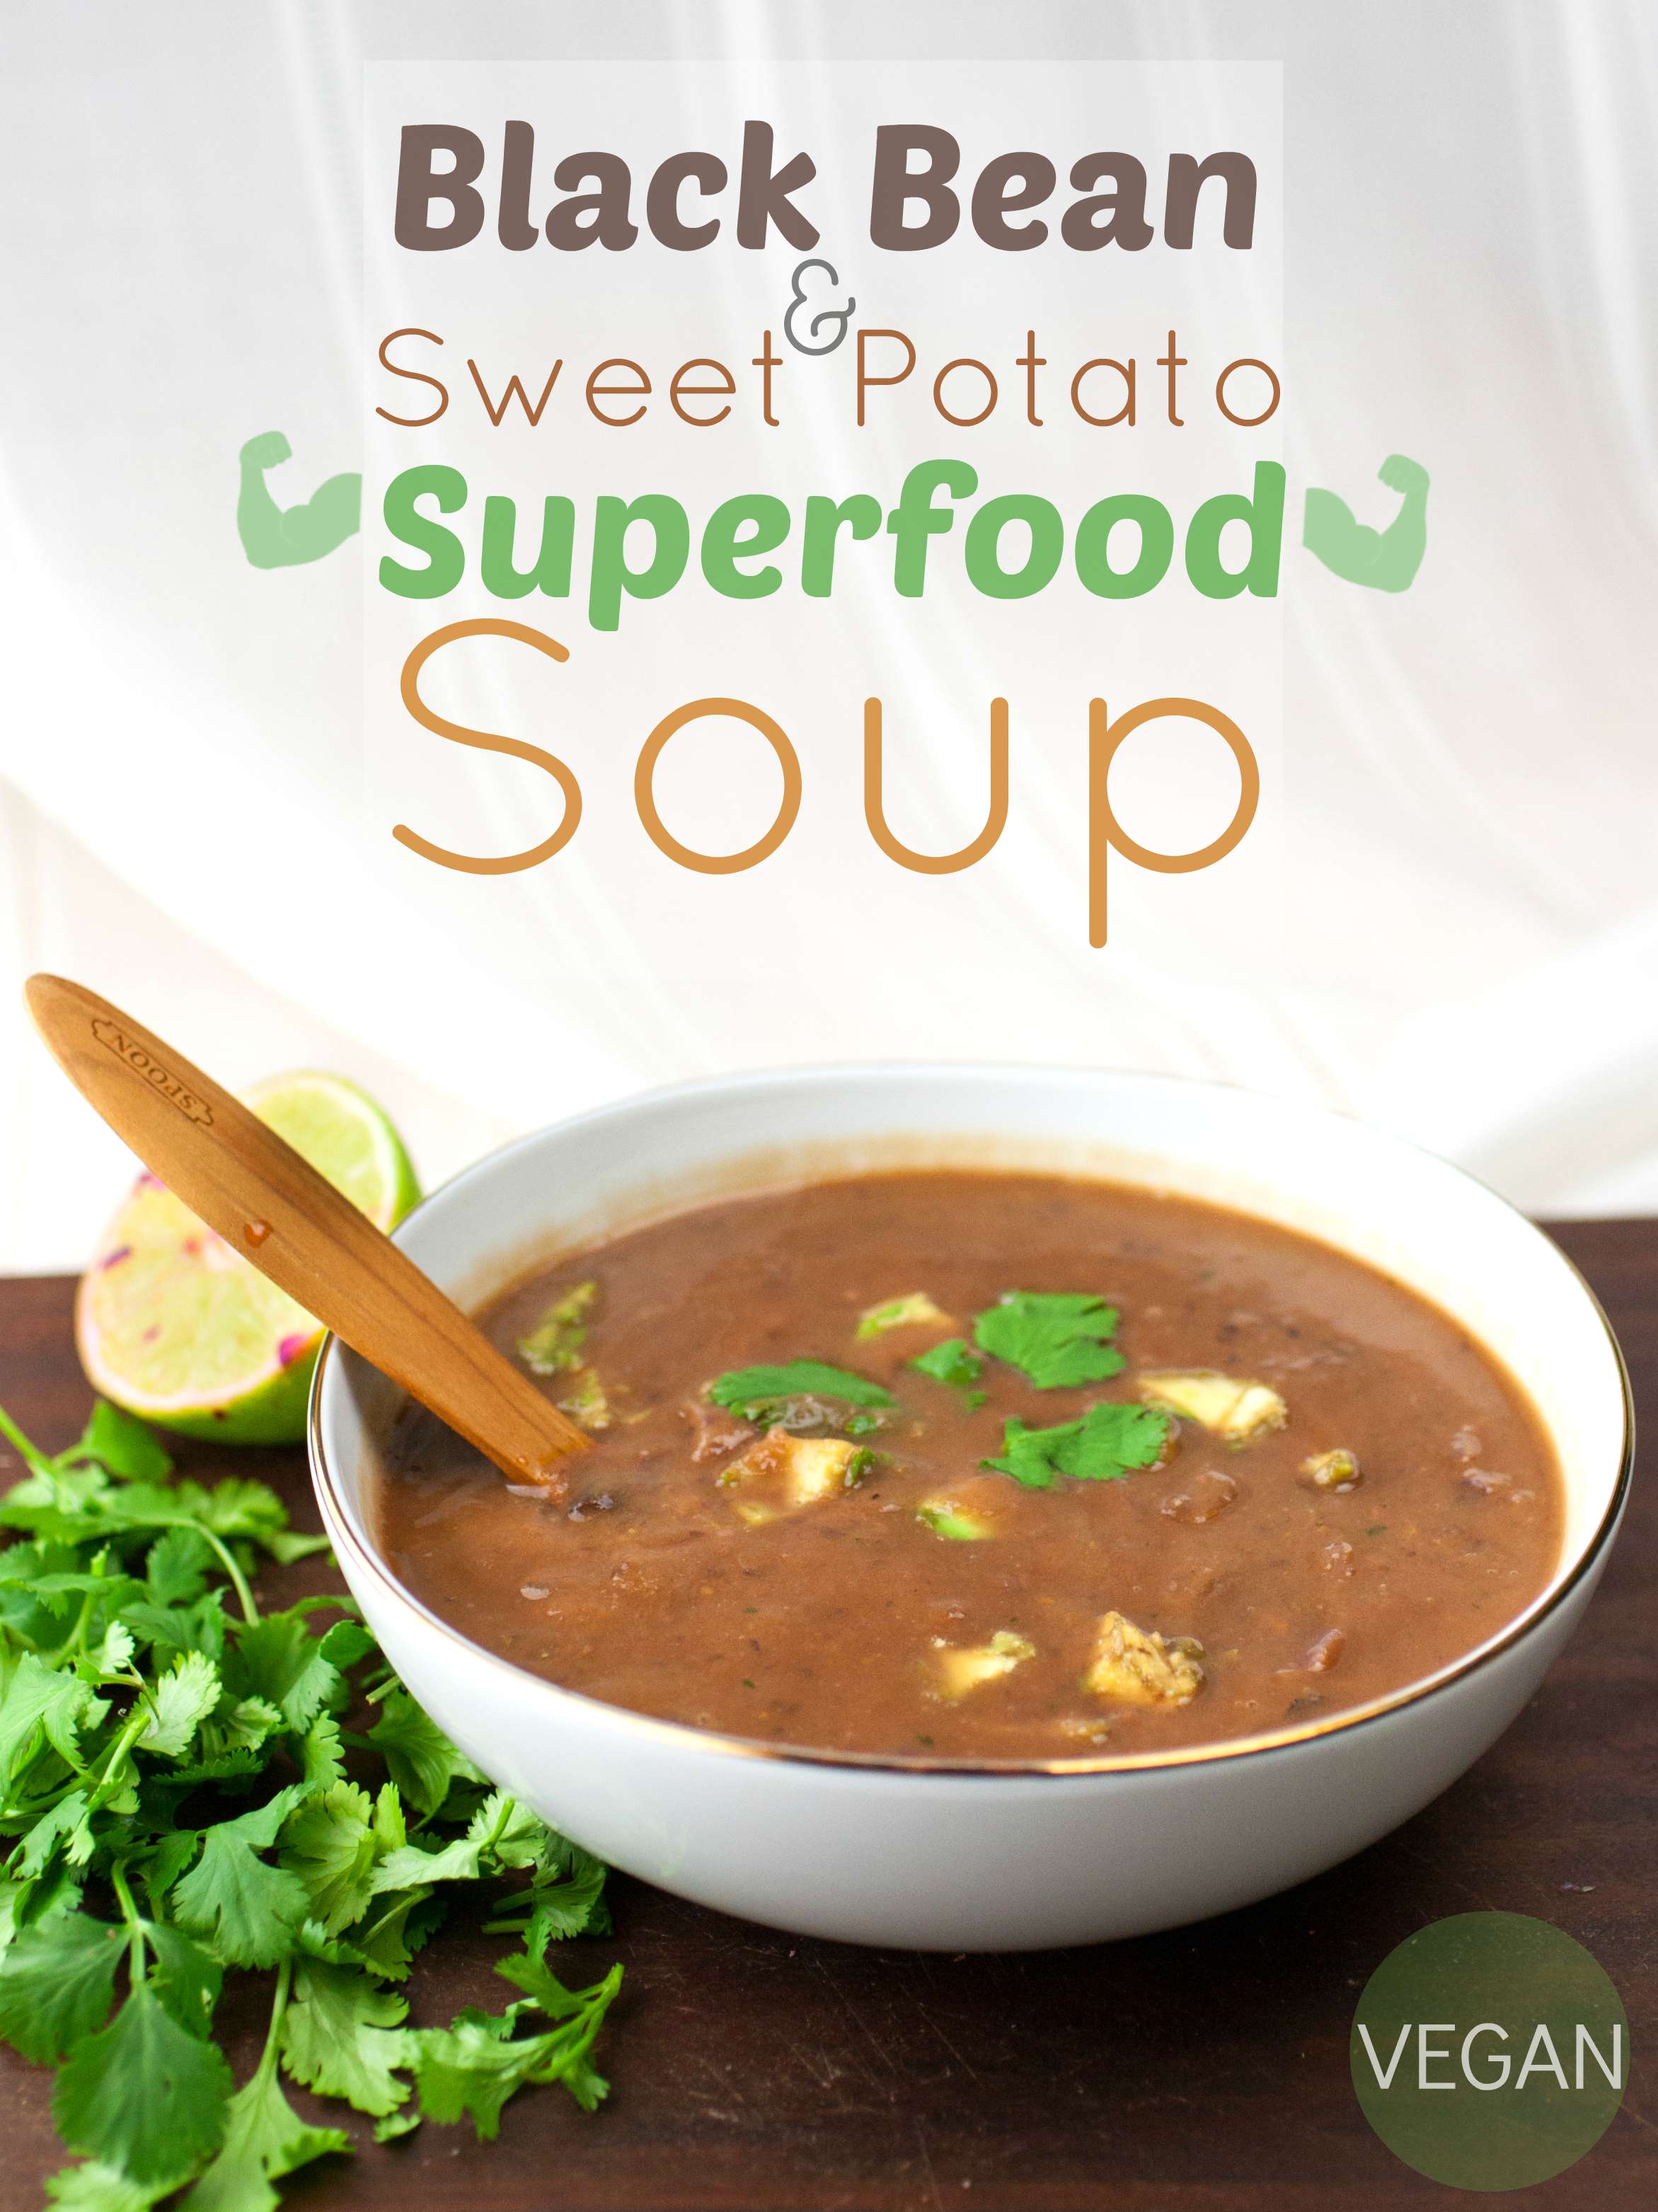 ... Black beans, sweet potato, and red cabbage all make a superfood star